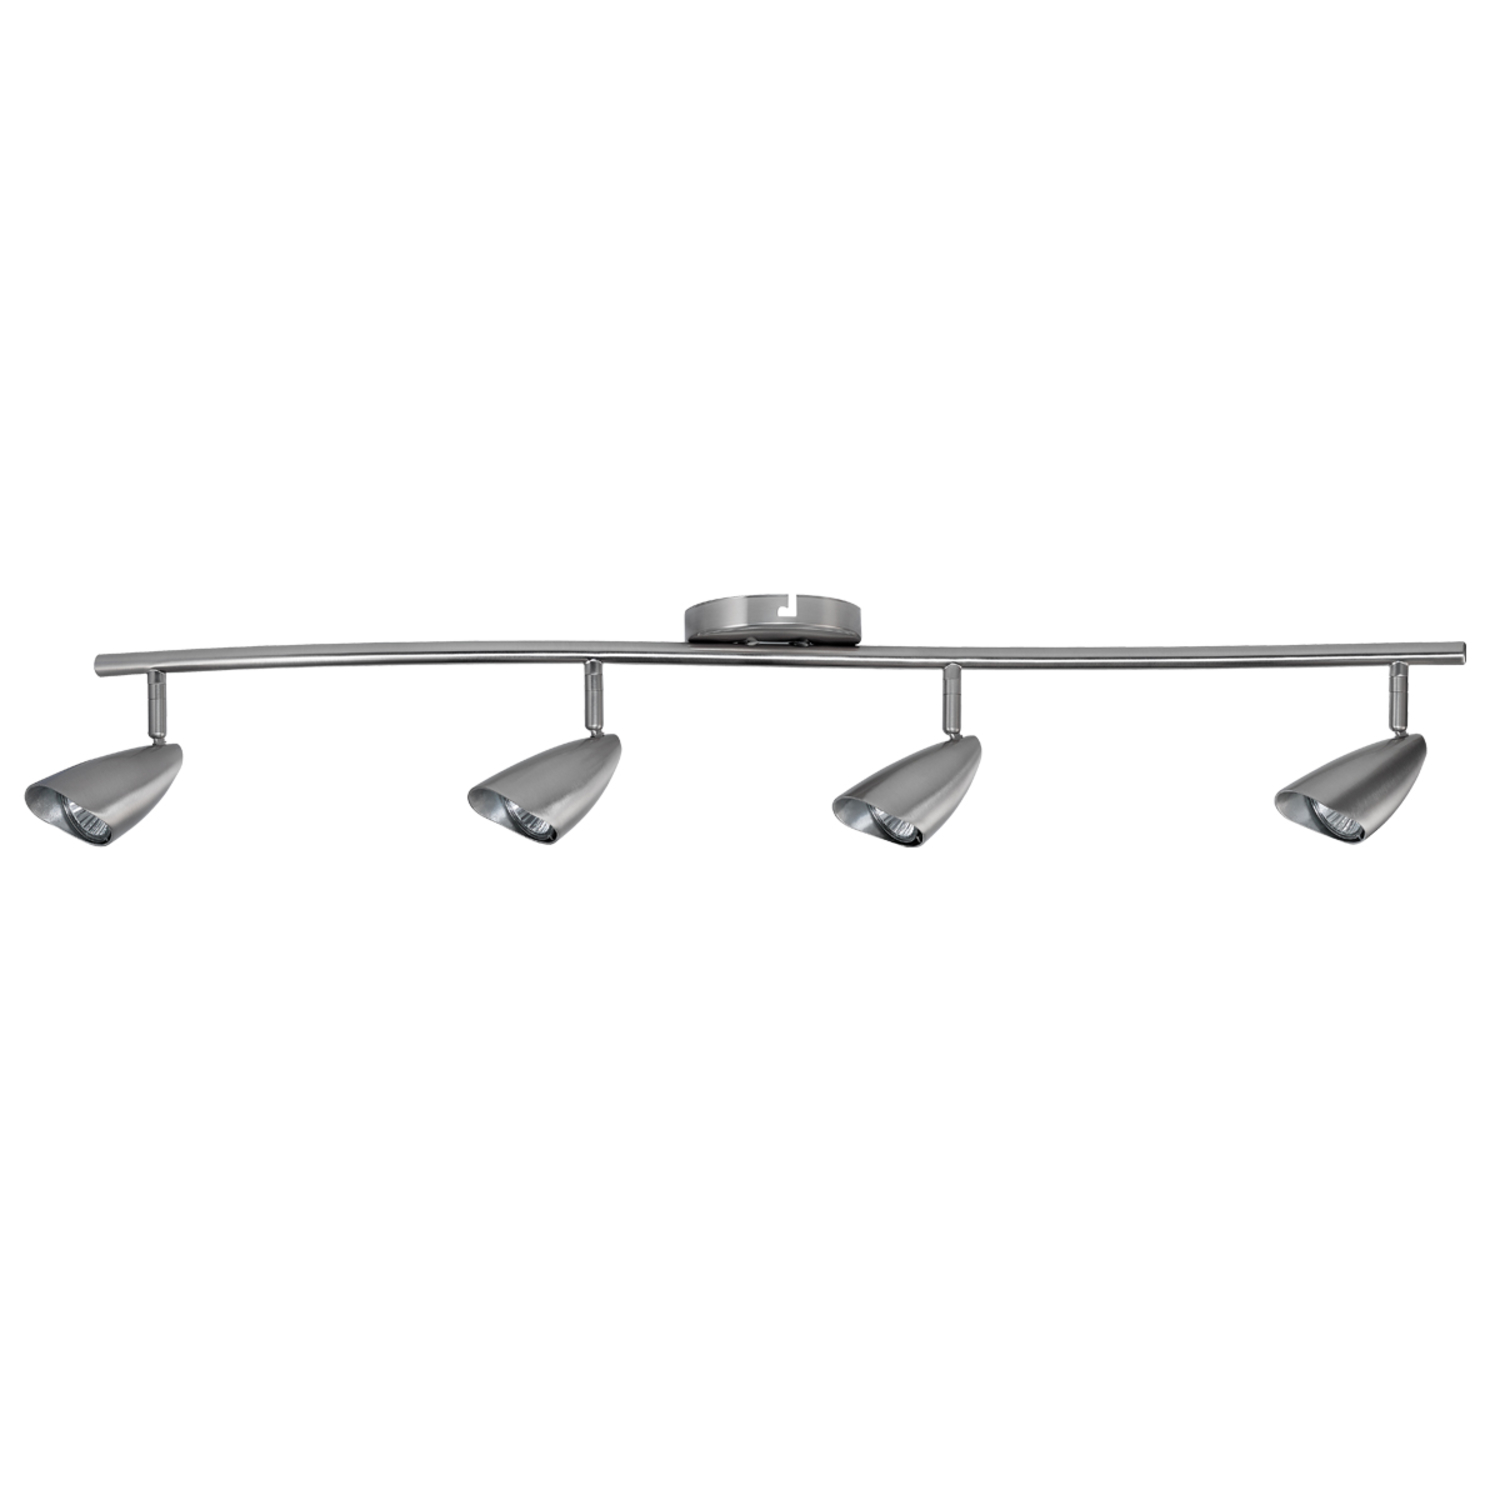 Globe  Brushed Nickel  Silver  4 lights Halogen  Track Light Kit